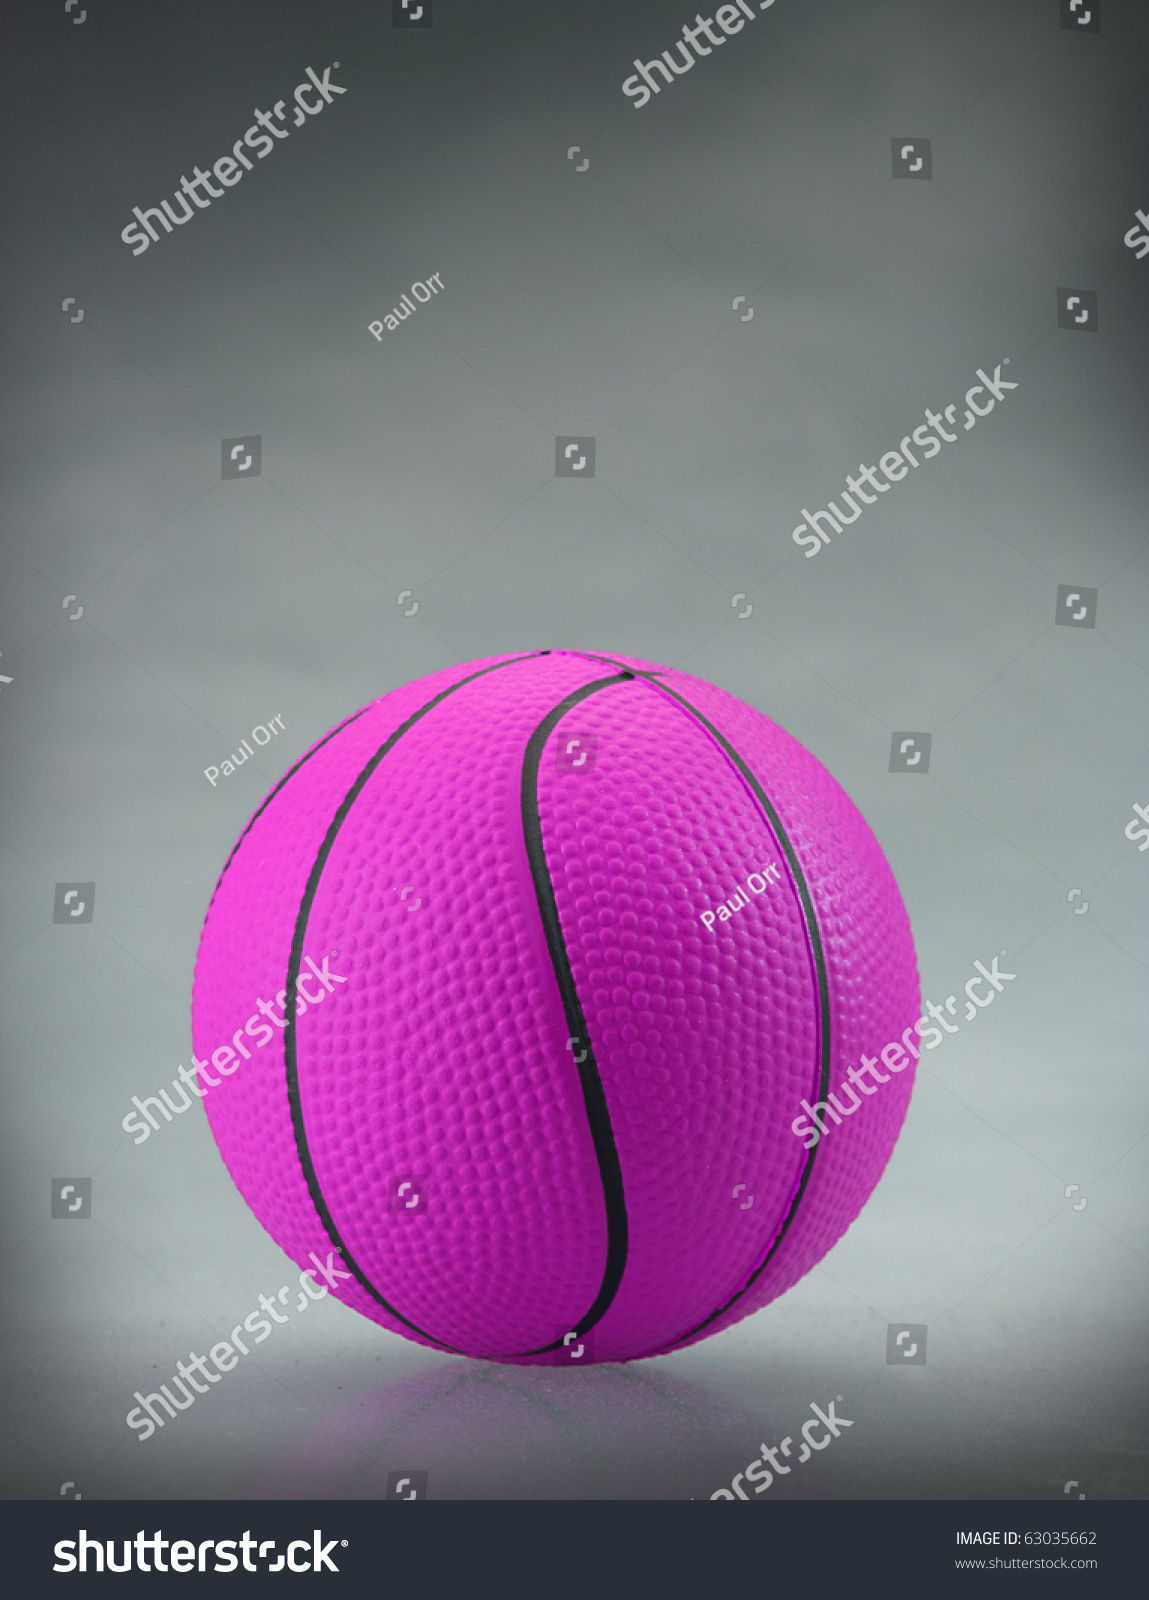 Neon Purple Basketball With Gray Sponged Background And